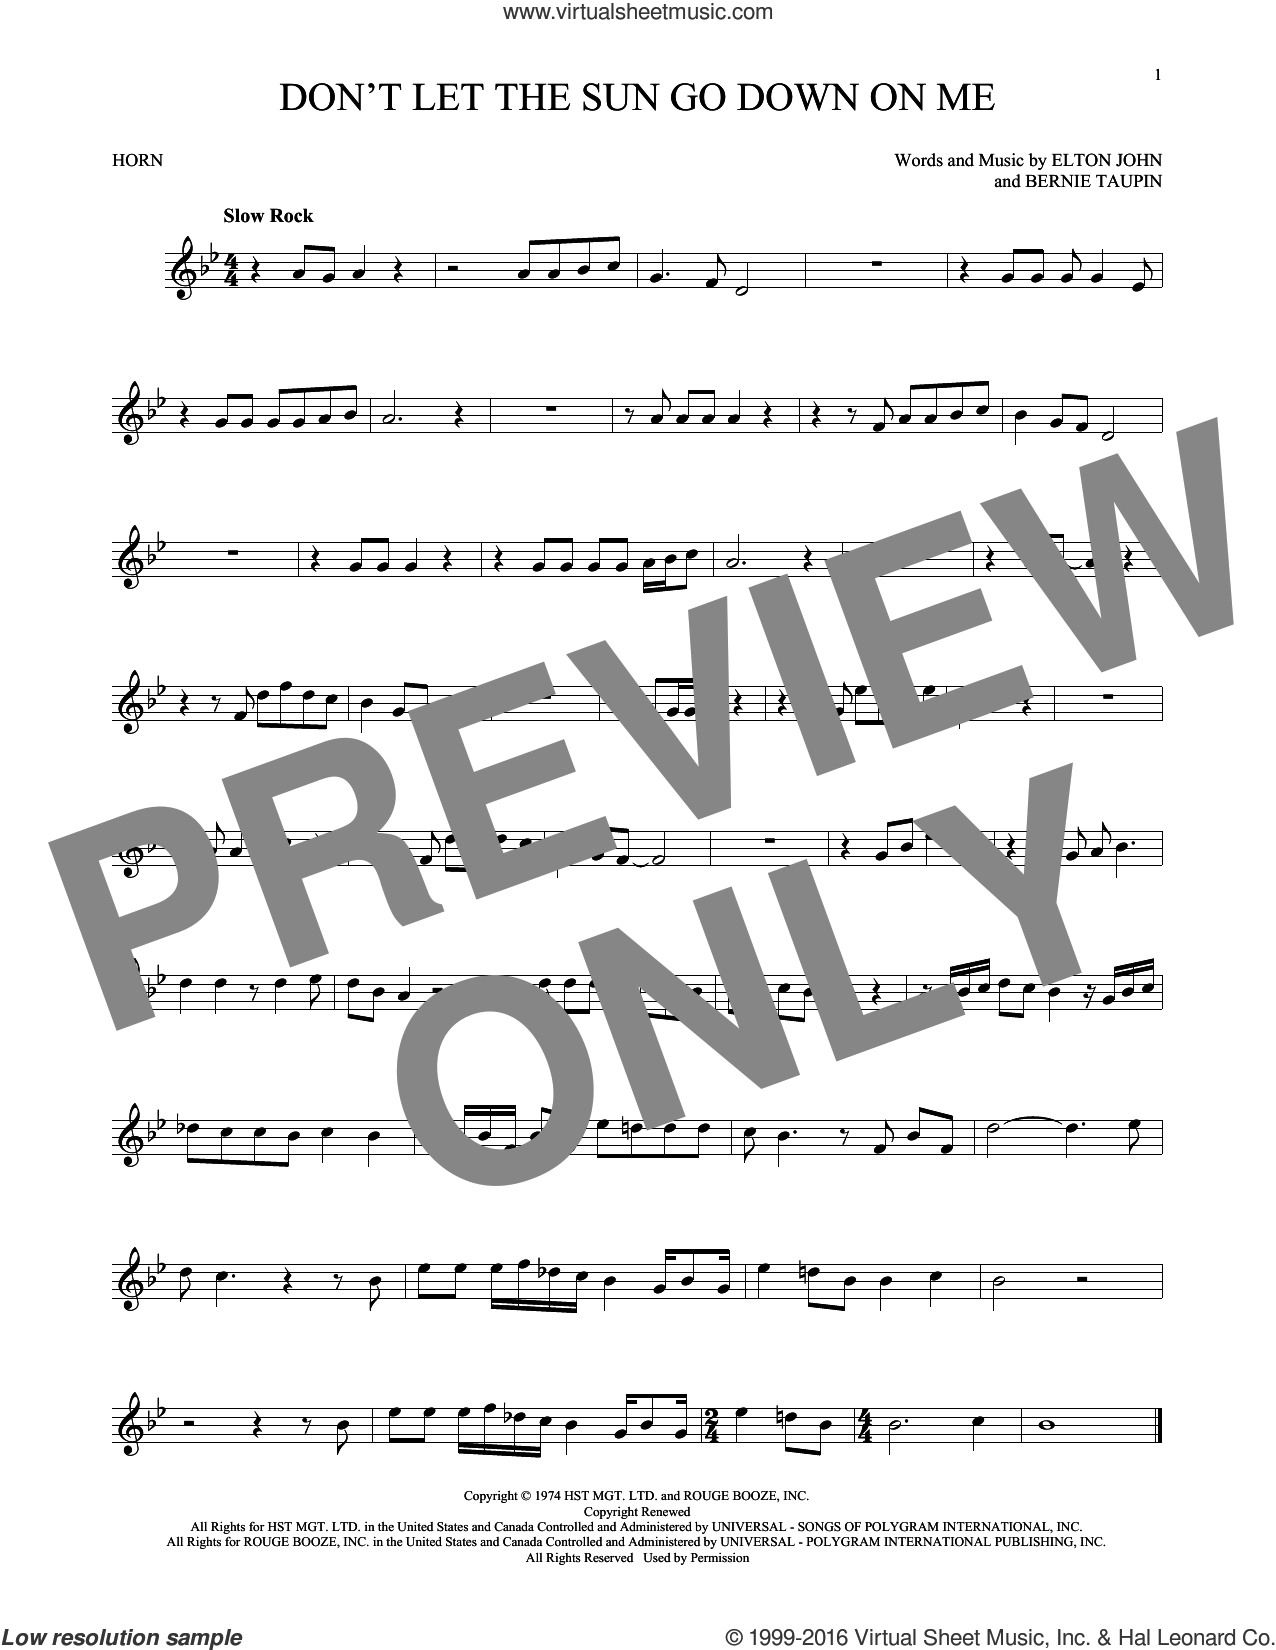 Don't Let The Sun Go Down On Me sheet music for horn solo by Elton John & George Michael, David Archuleta, Bernie Taupin and Elton John, intermediate skill level